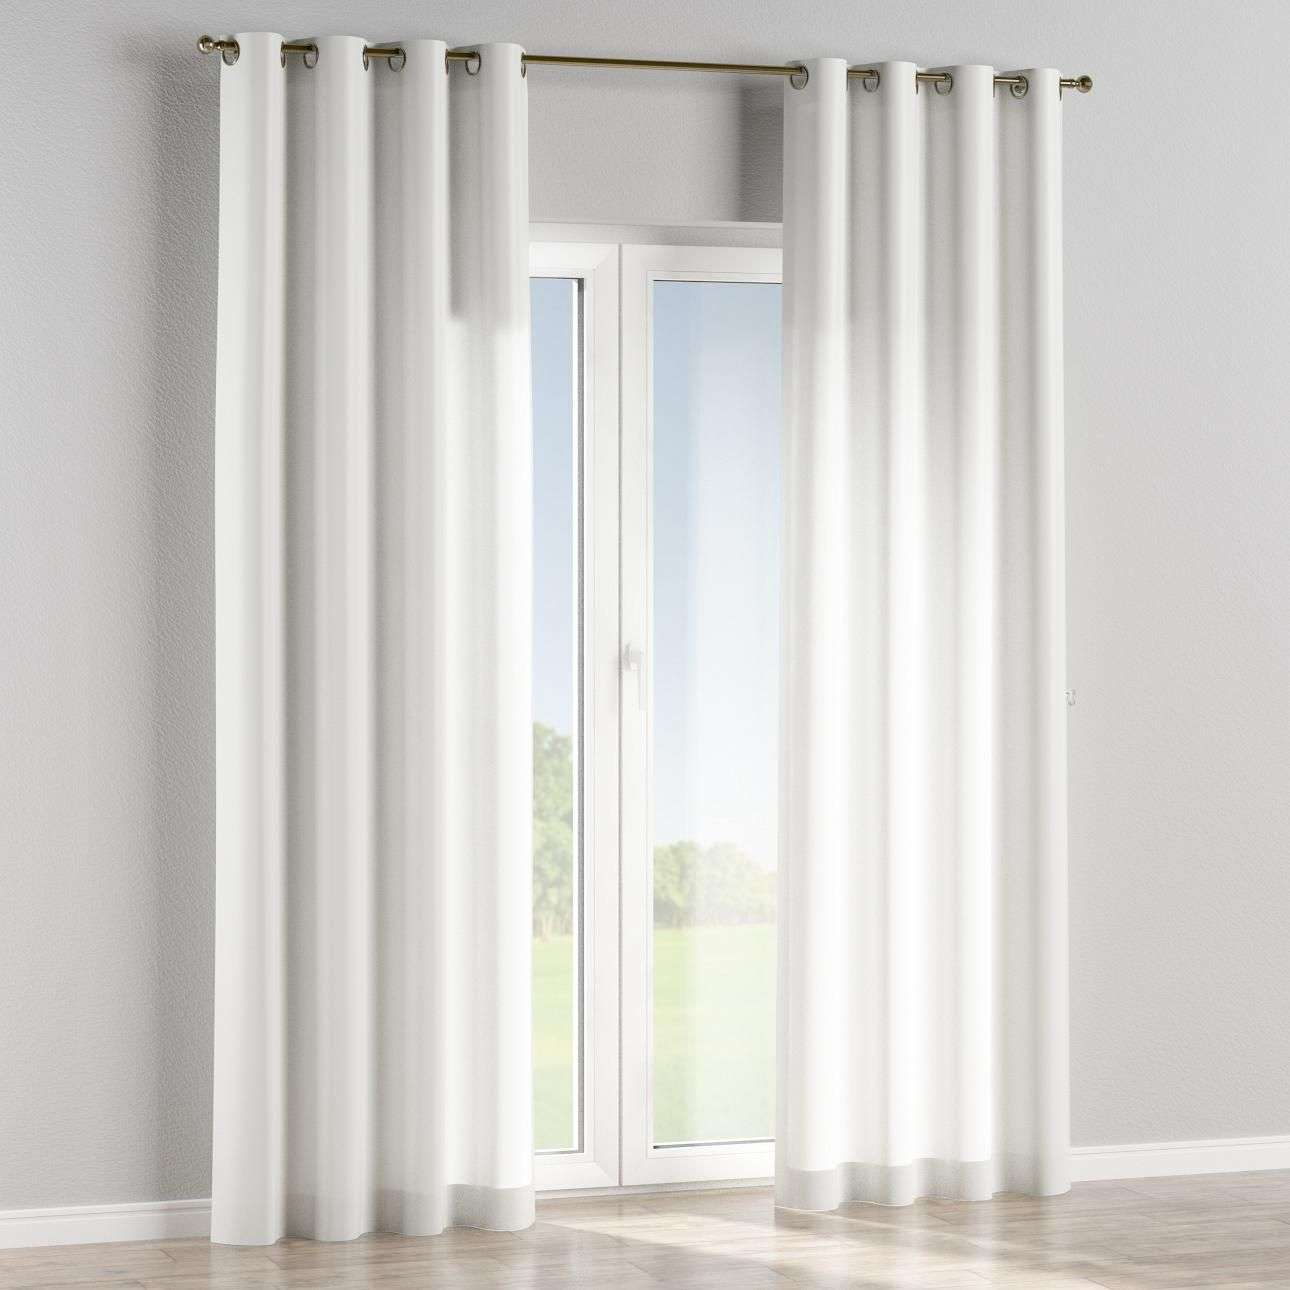 Eyelet lined curtains in collection Cardiff, fabric: 136-30